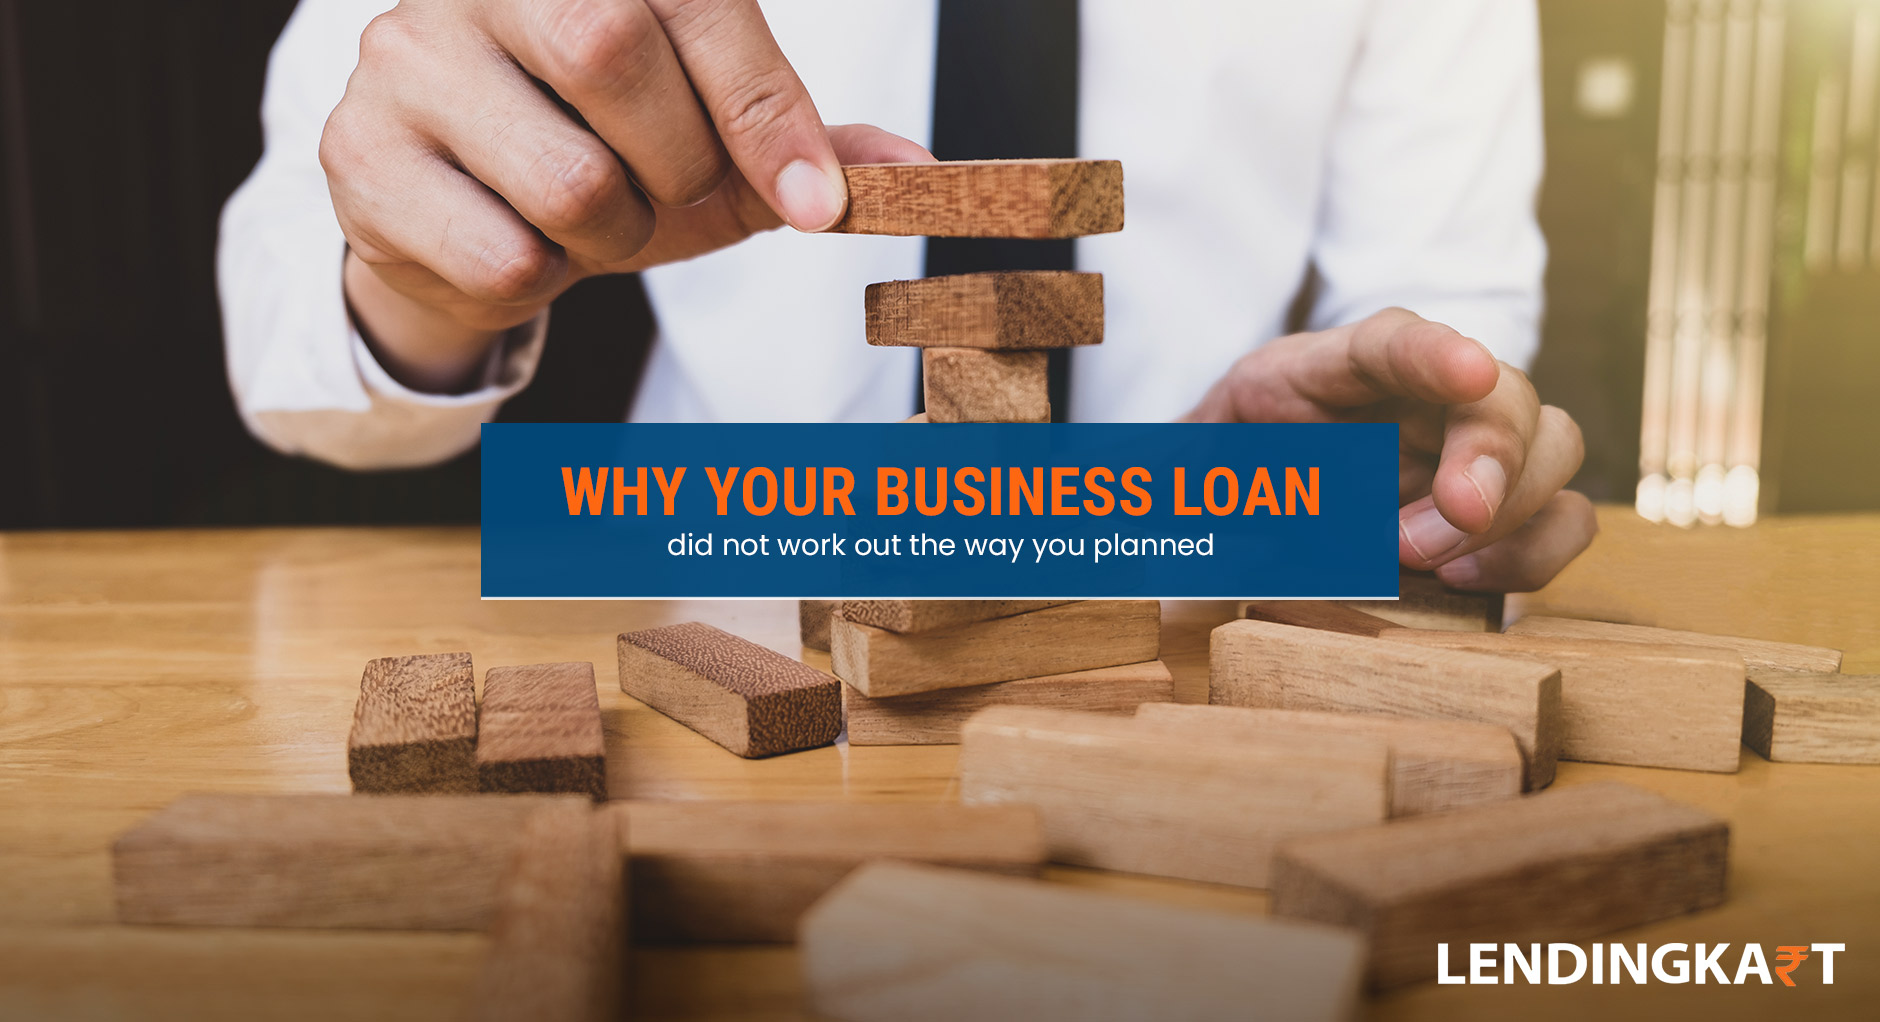 Why Your Business Loan Did Not Work out the way you Planned